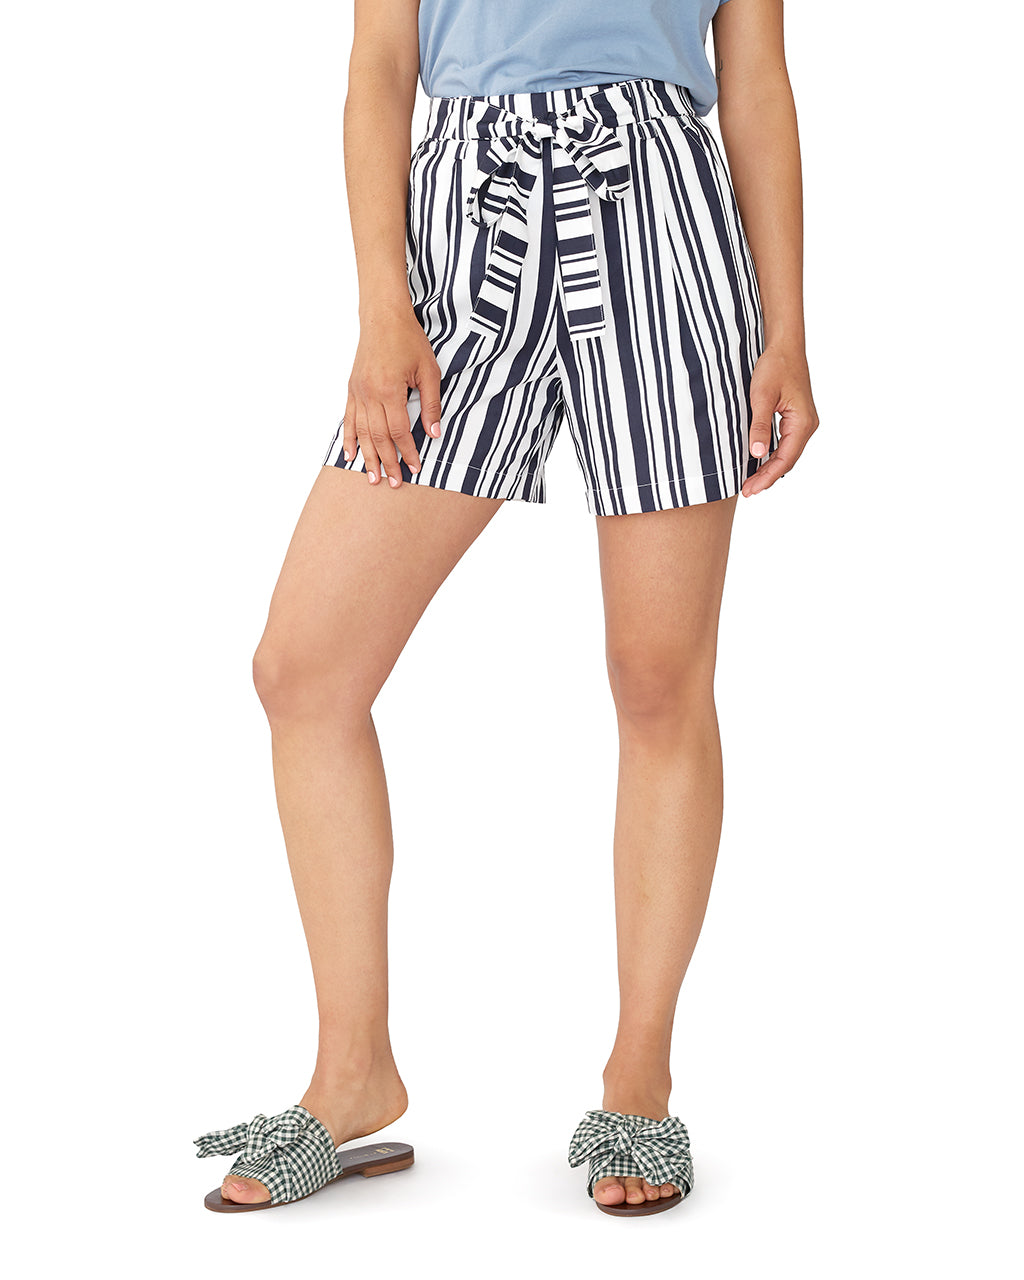 woman wearing sandals and striped shorts